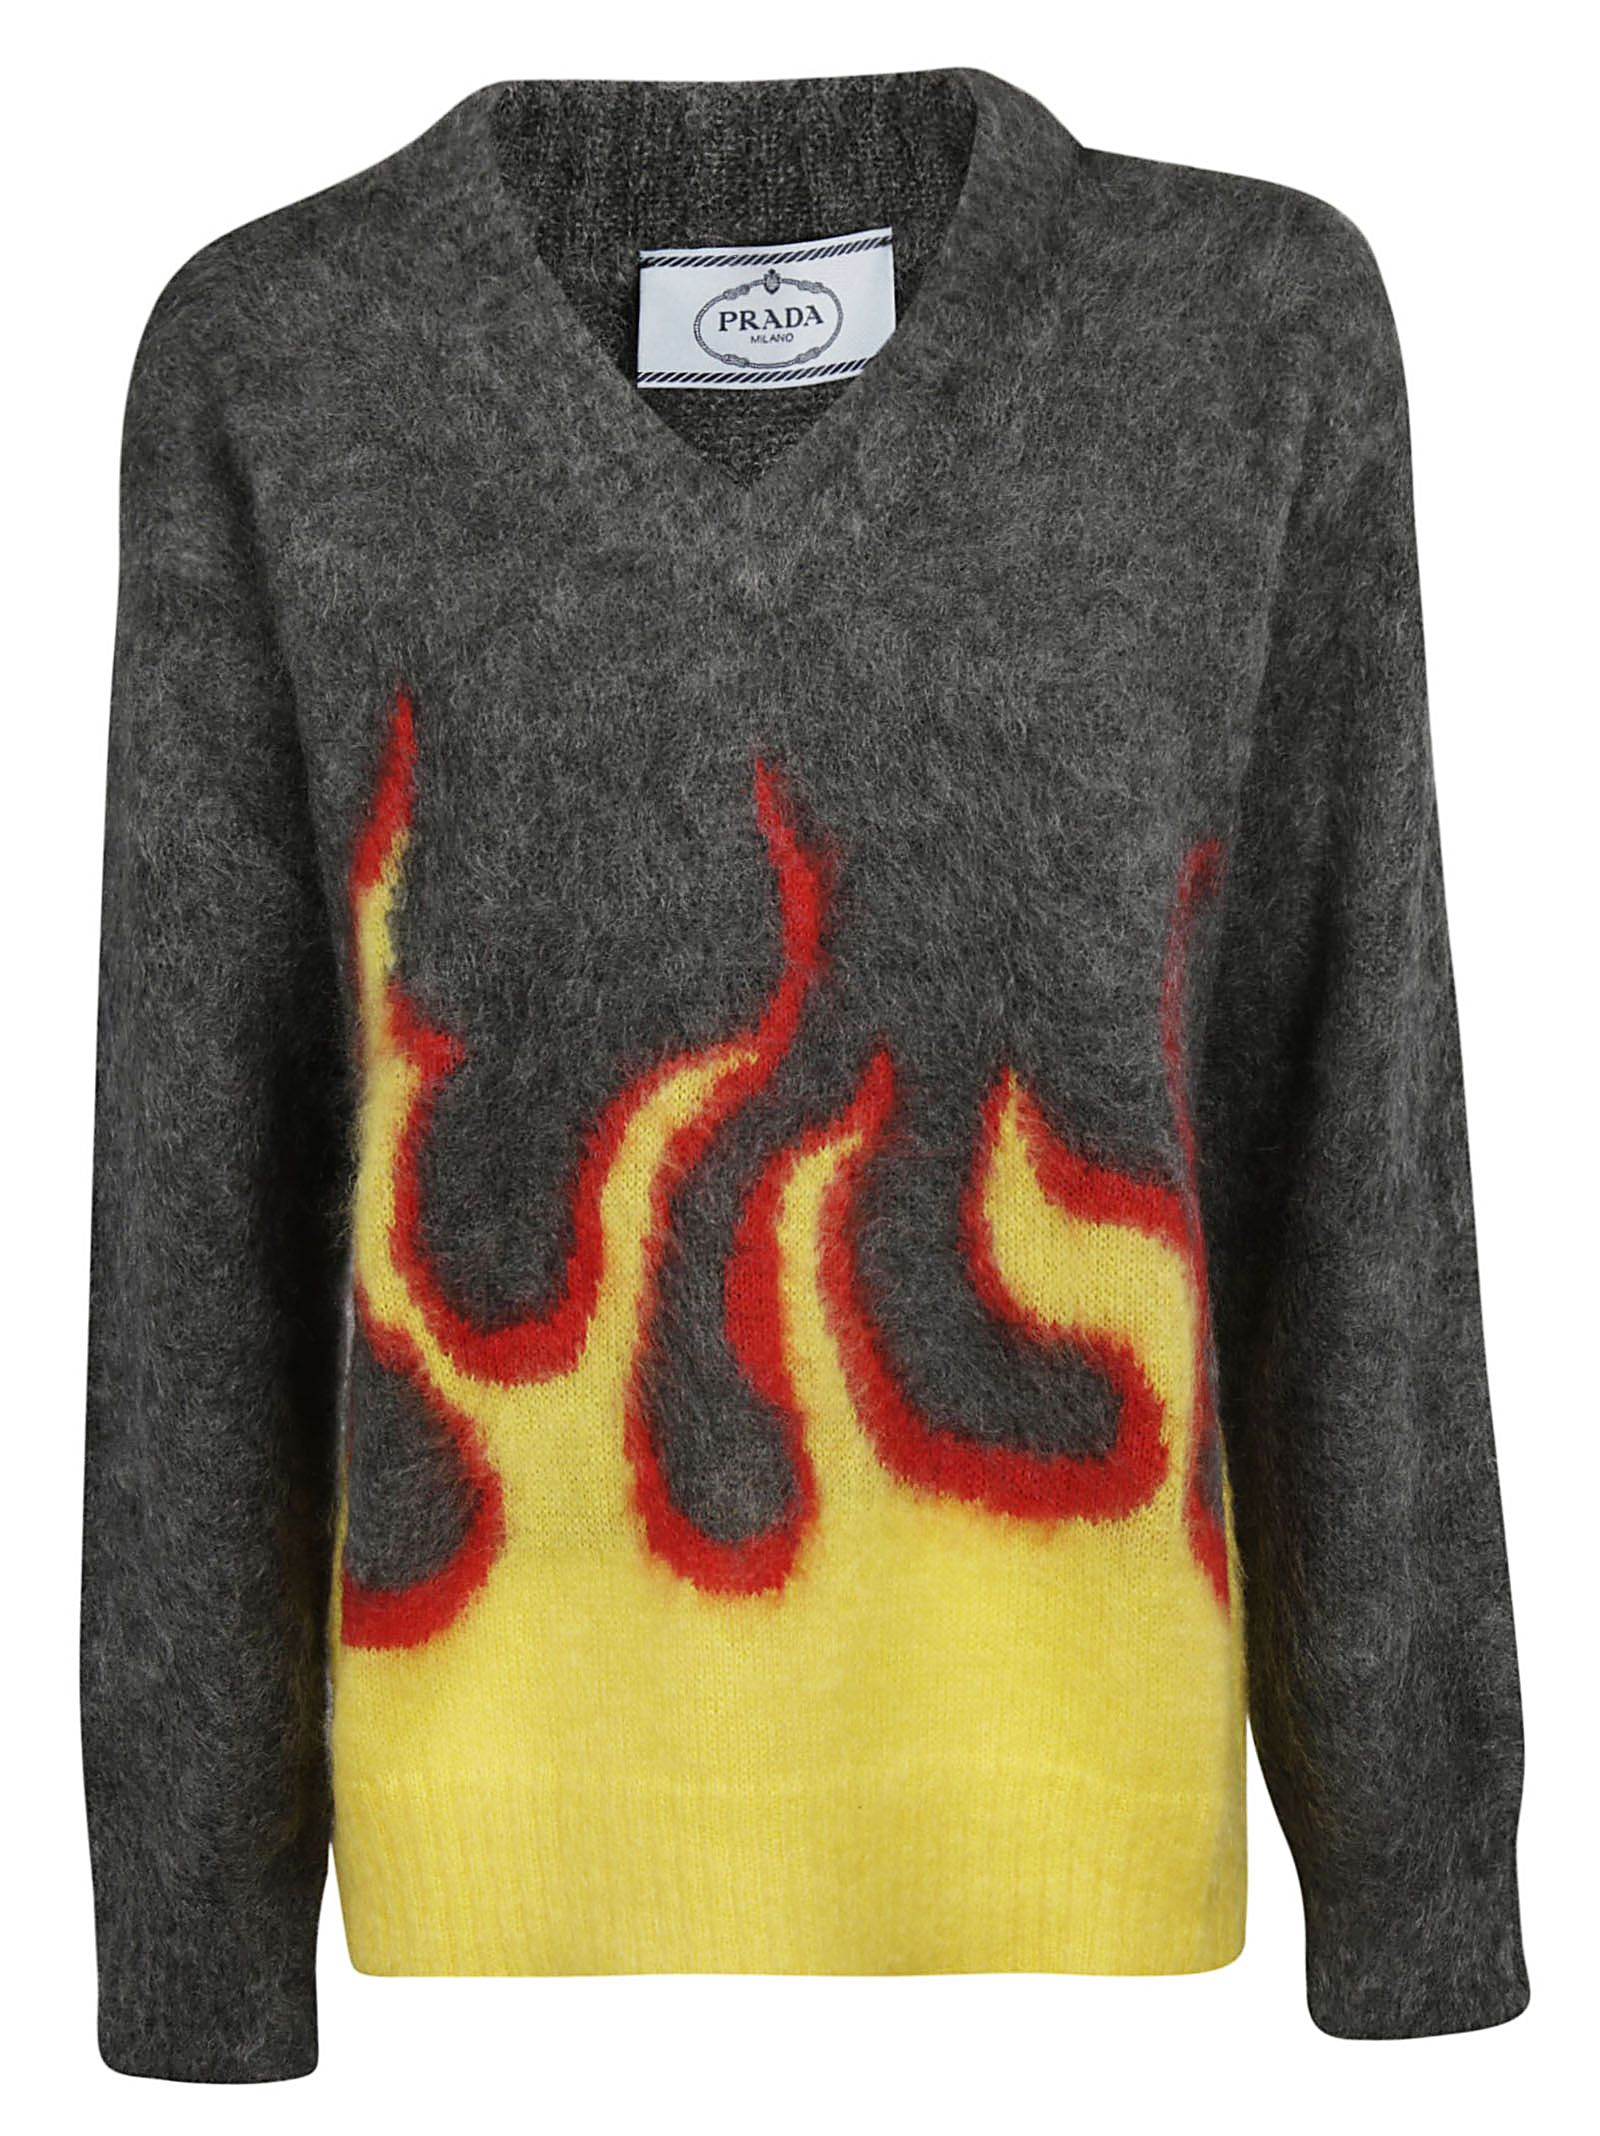 Prada Flames Embroidered Sweater